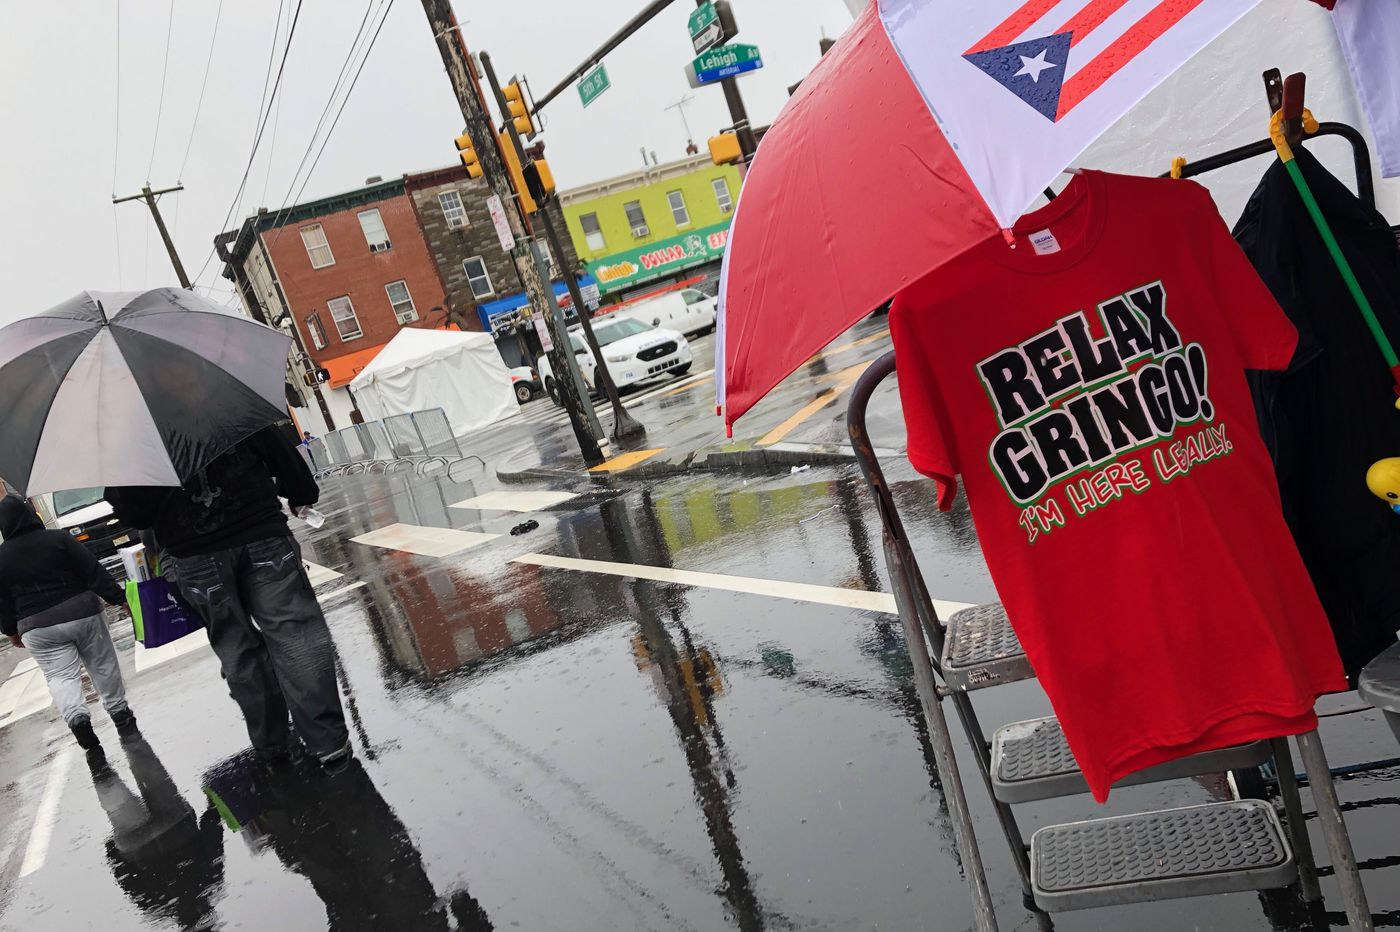 Philly Puerto Ricans respond to Justice Sotomayor's comments about identity